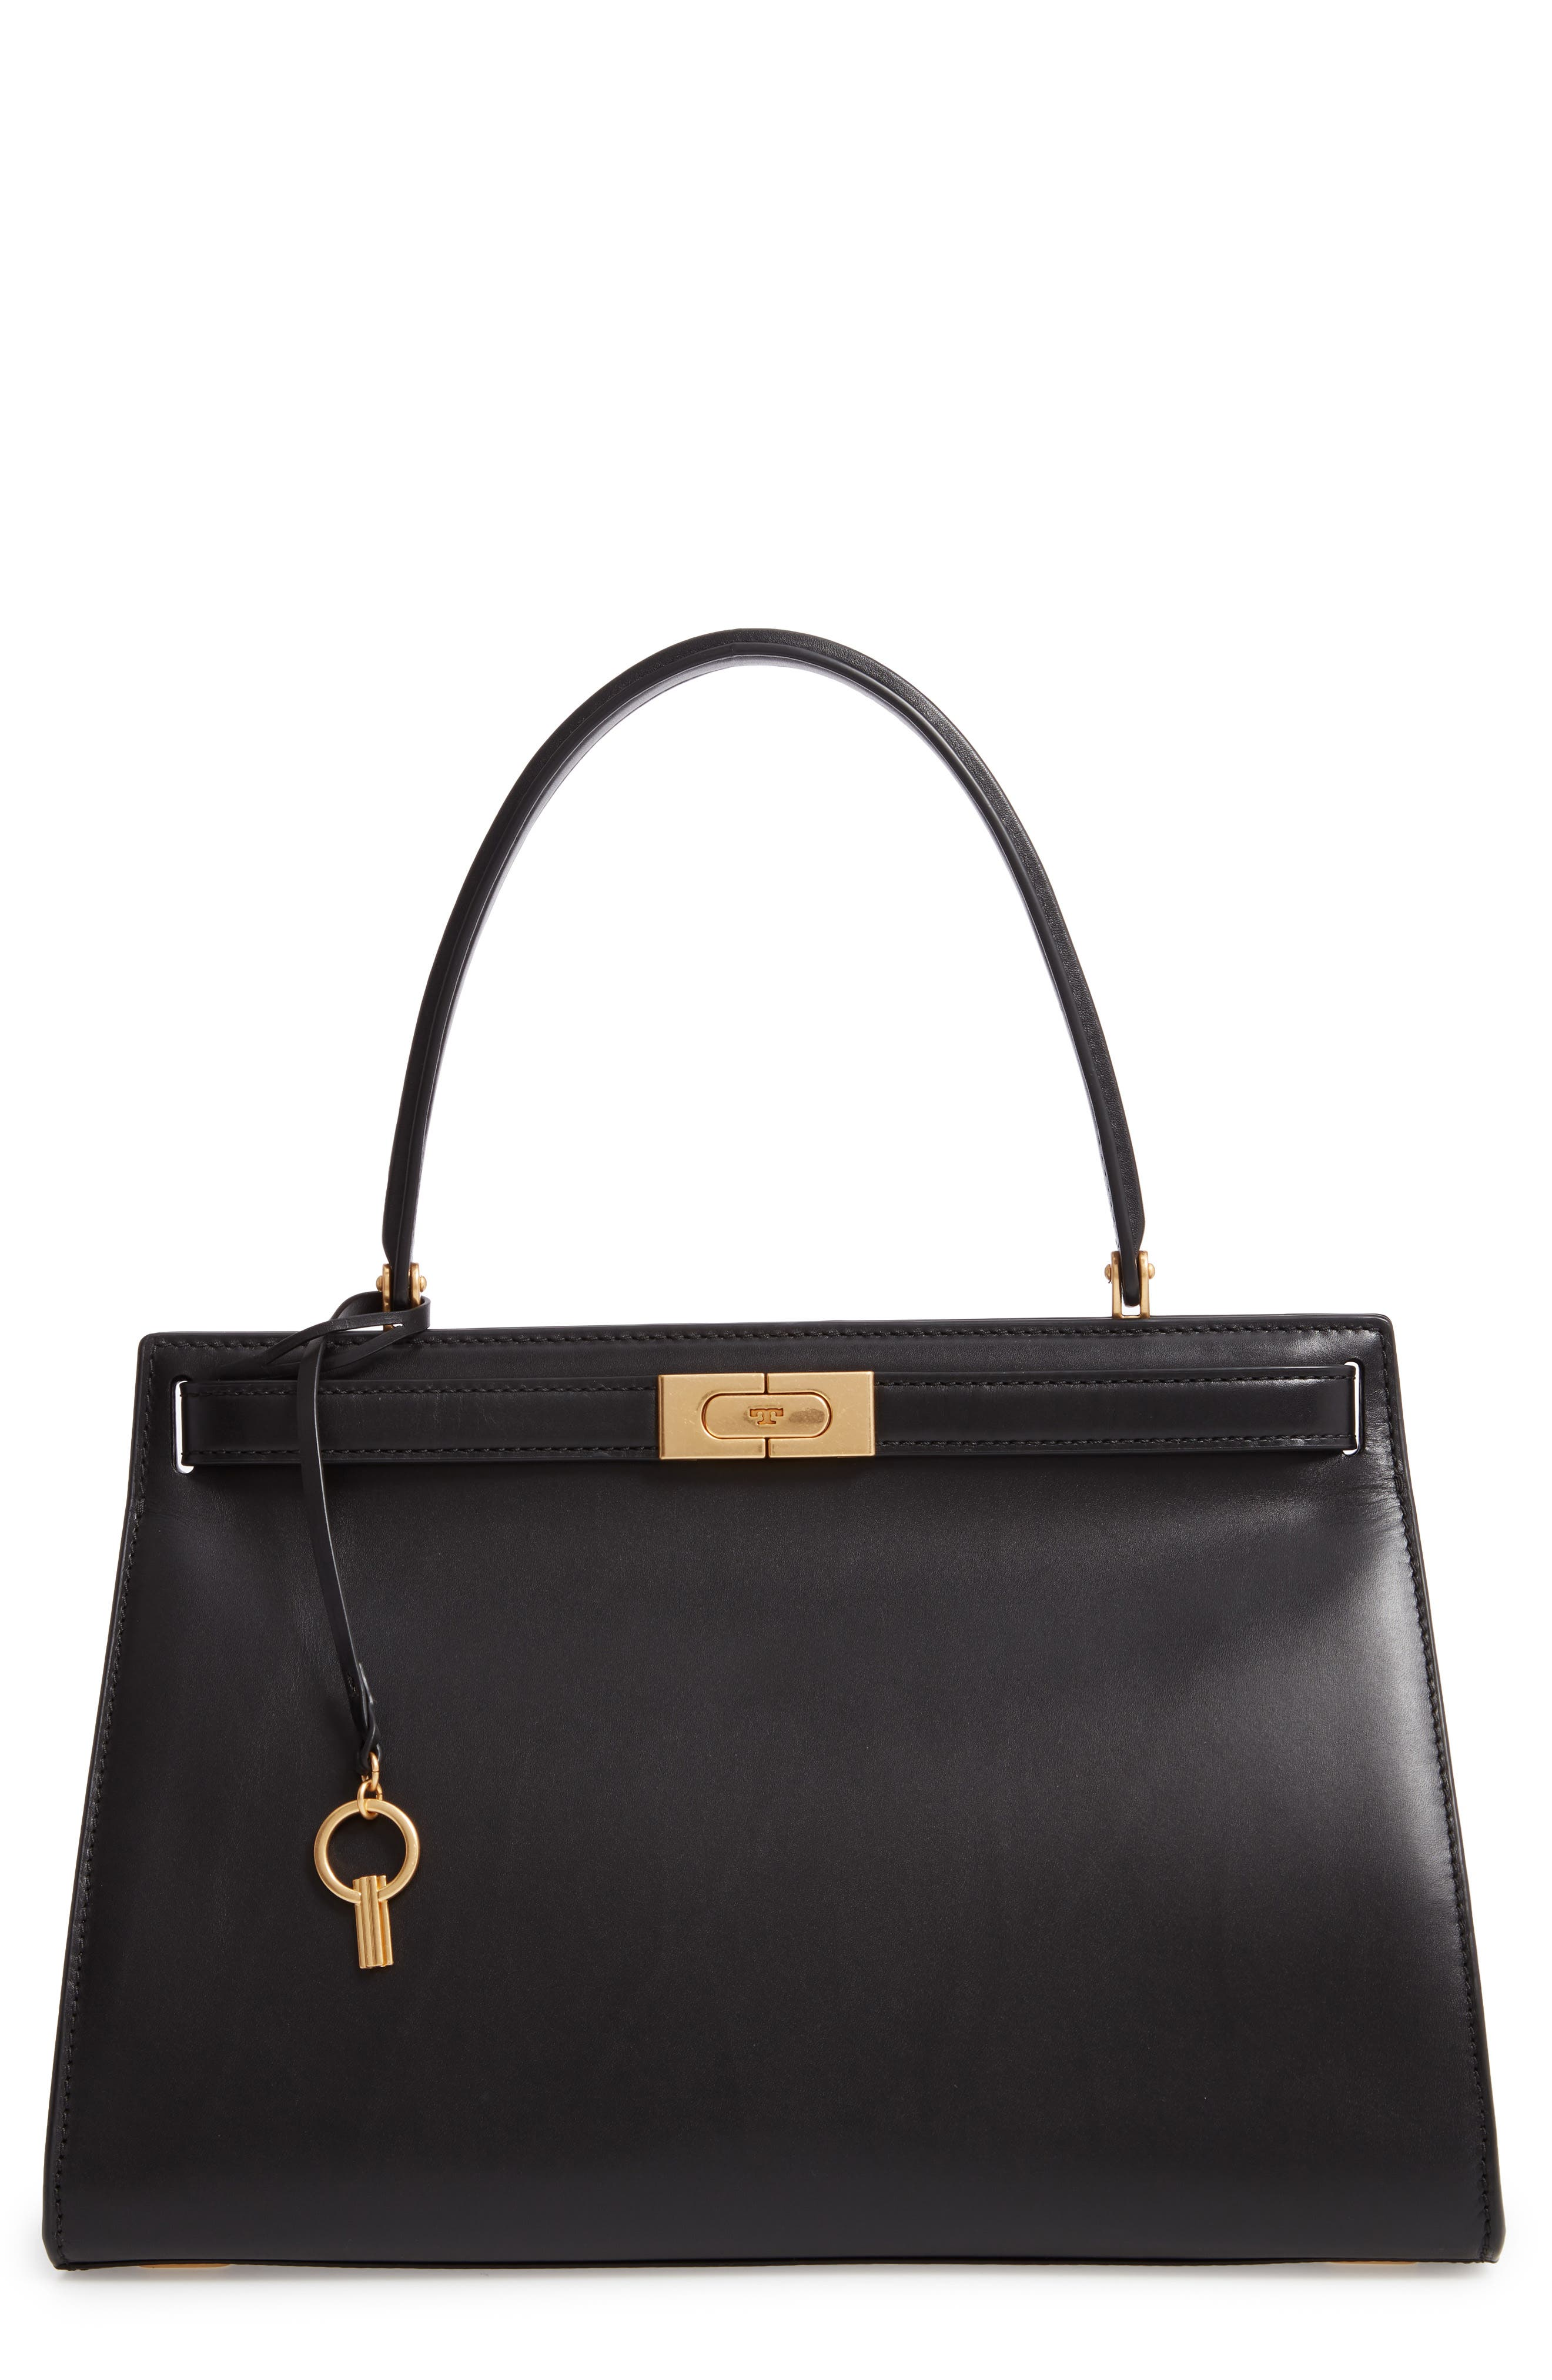 Lee Radziwill Small Leather Satchel,                         Main,                         color, BLACK